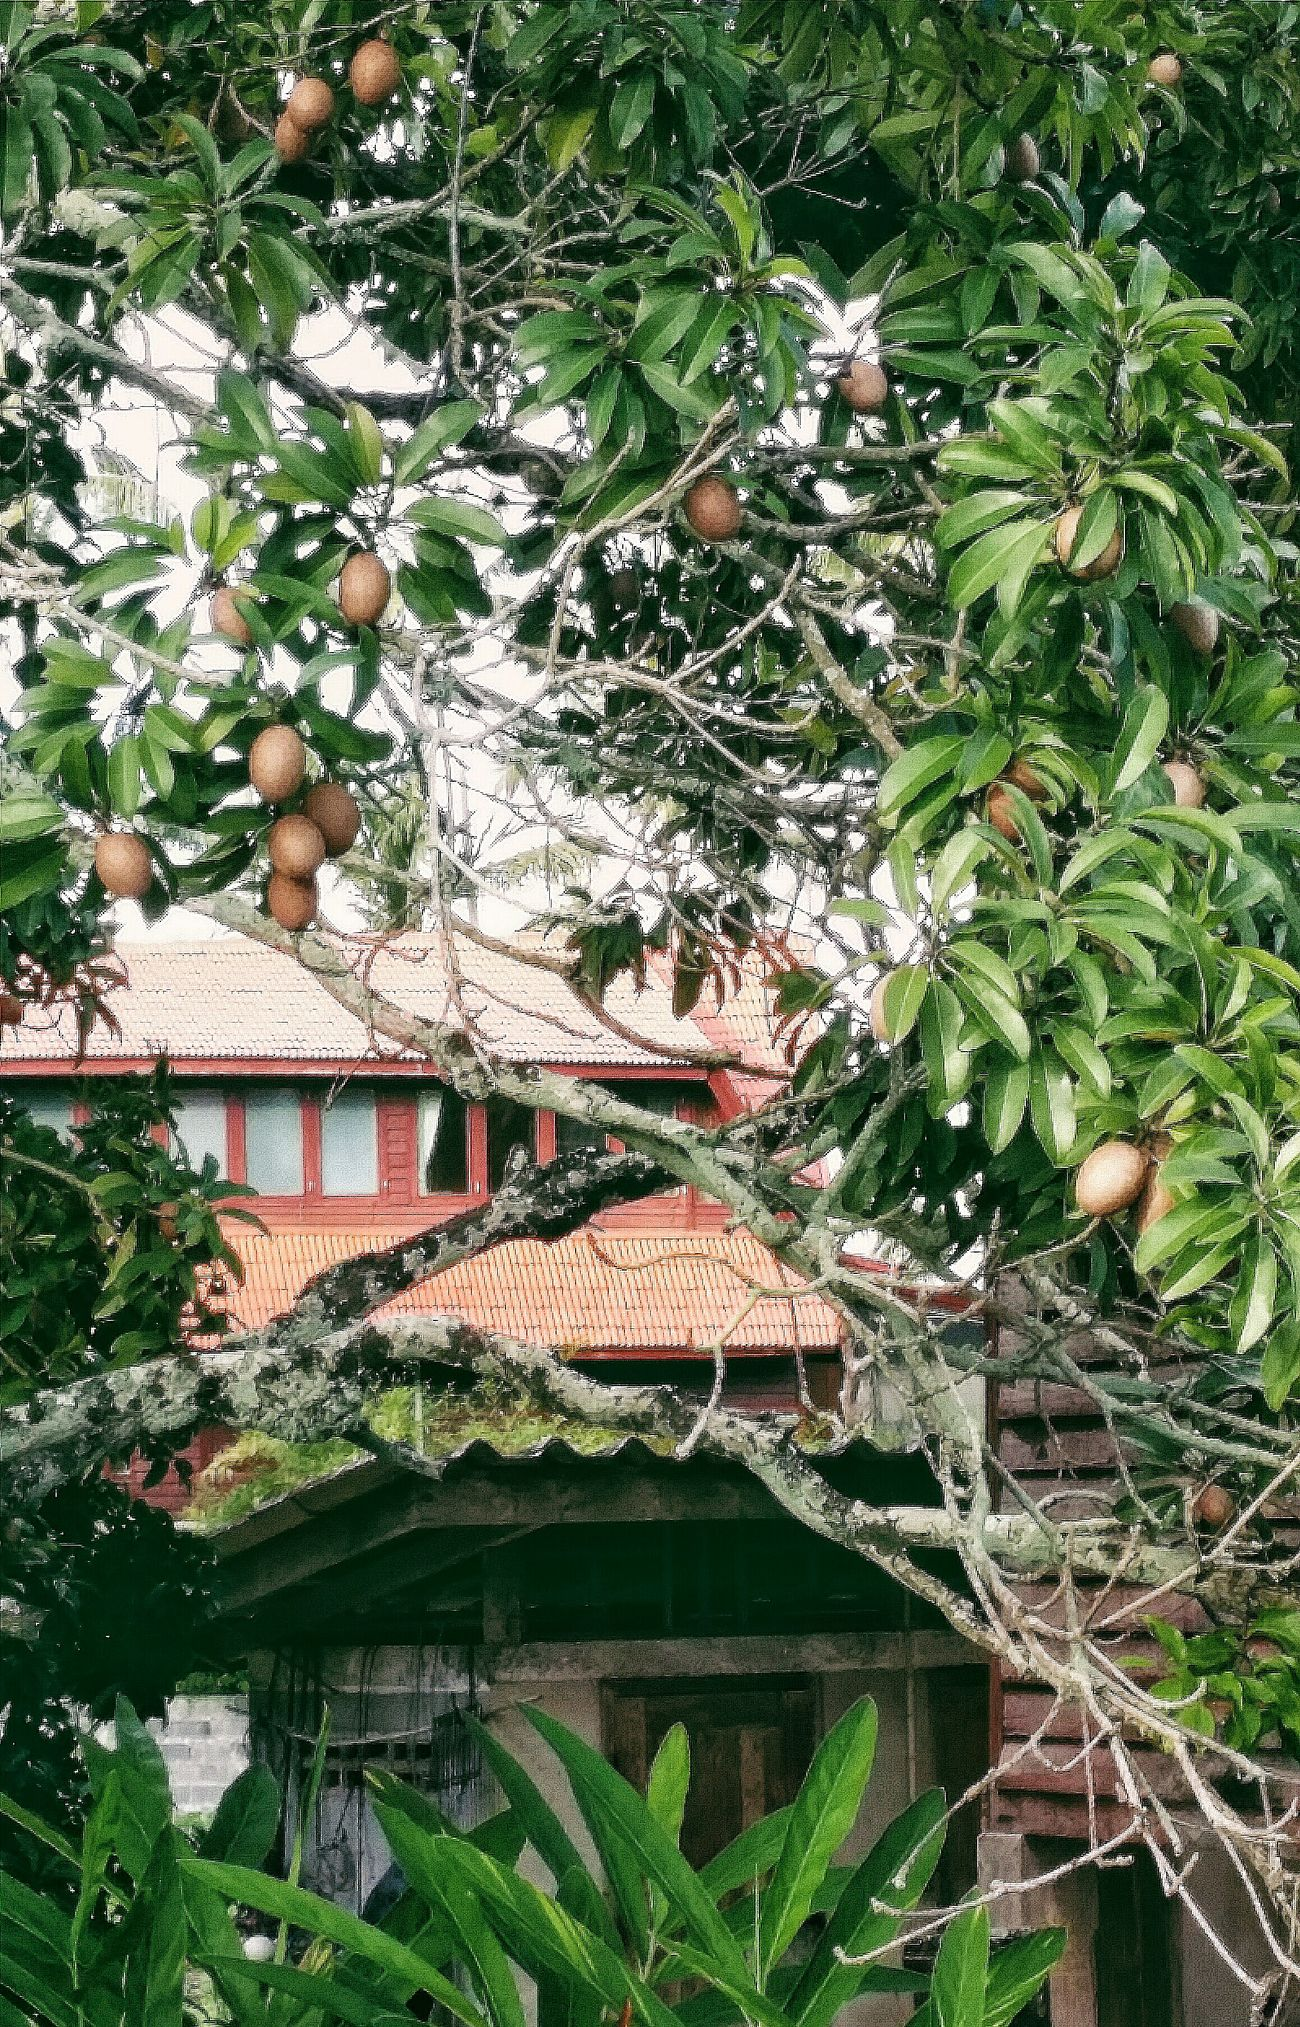 I believe these are Chikus Chiku Tree. I was pretty excited (my first chiku tree) ! Fruits Fruit Trees Building Architecture Architecturephotography Architecturecollection Architecturelovers Maenam Koh Samui Thailand Travelphotography Eyeemkohsamui Eyeemthailand Eyeemcollection Eyeemphotography